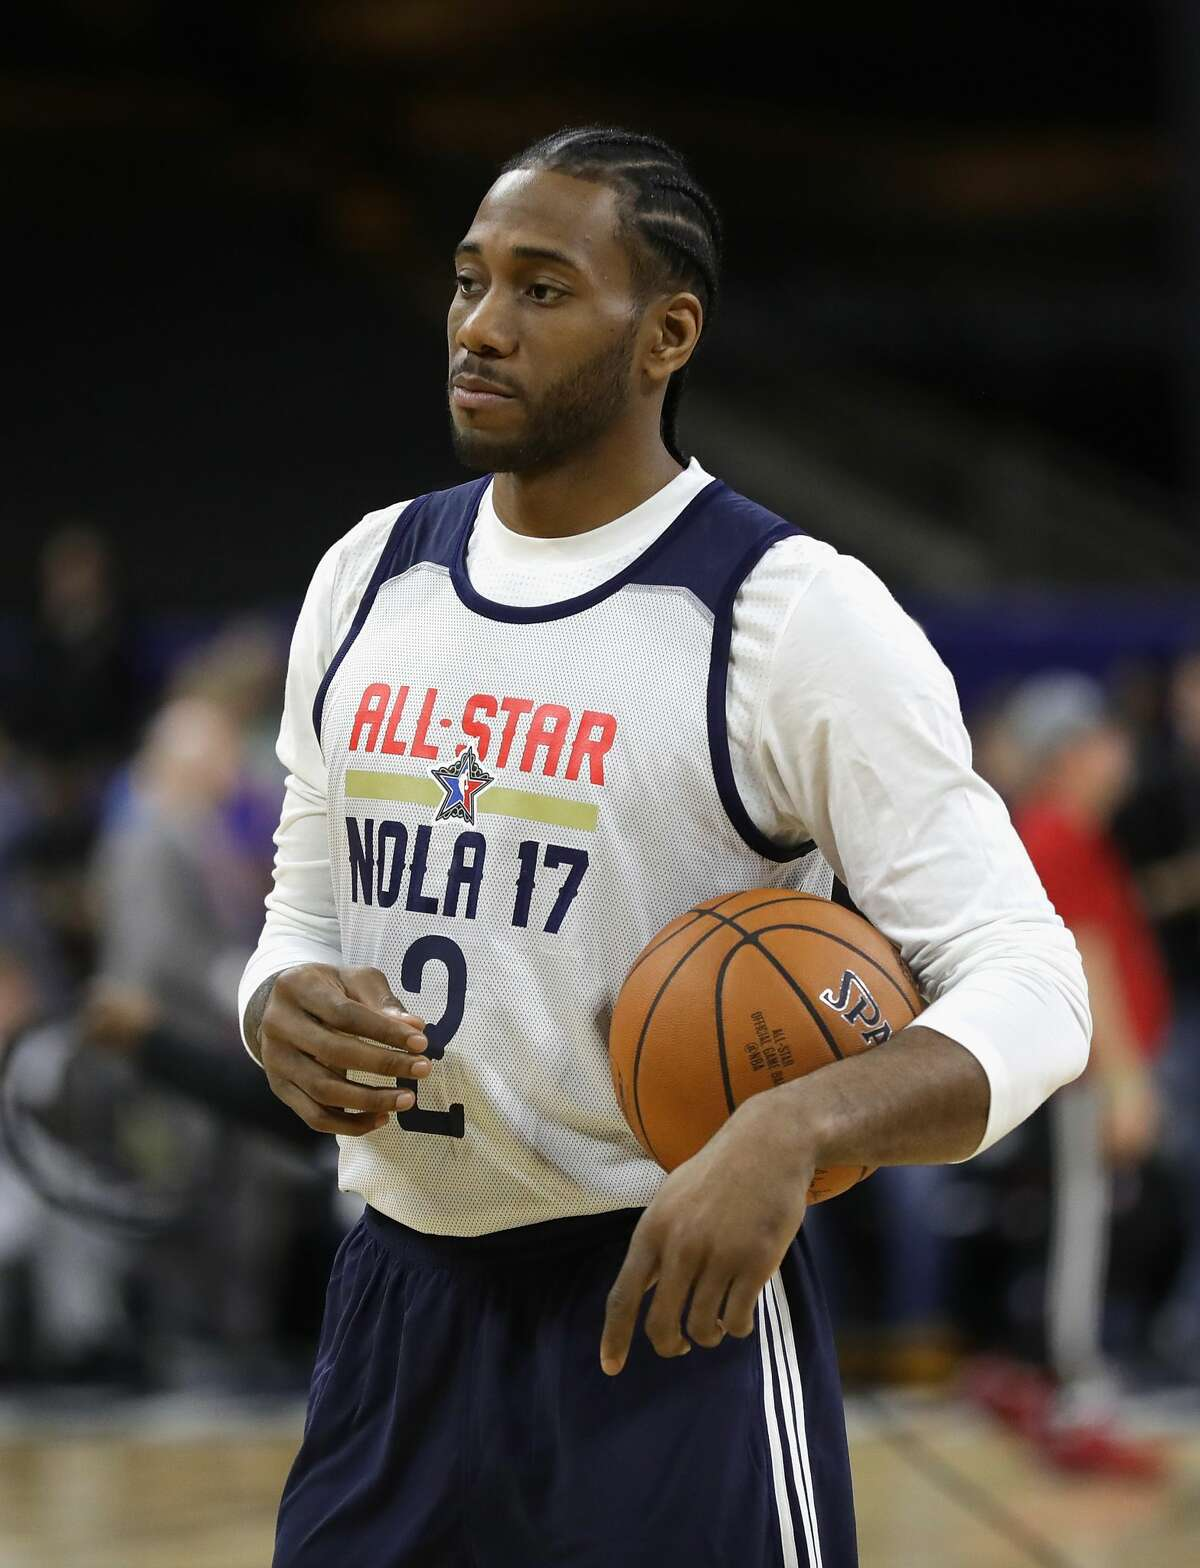 NEW ORLEANS, LA - FEBRUARY 18: Kawhi Leonard #2 of the San Antonio Spurs looks on during practice for the 2017 NBA All-Star Game at the Mercedes-Benz Superdome on February 18, 2017 in New Orleans, Louisiana. (Photo by Ronald Martinez/Getty Images)